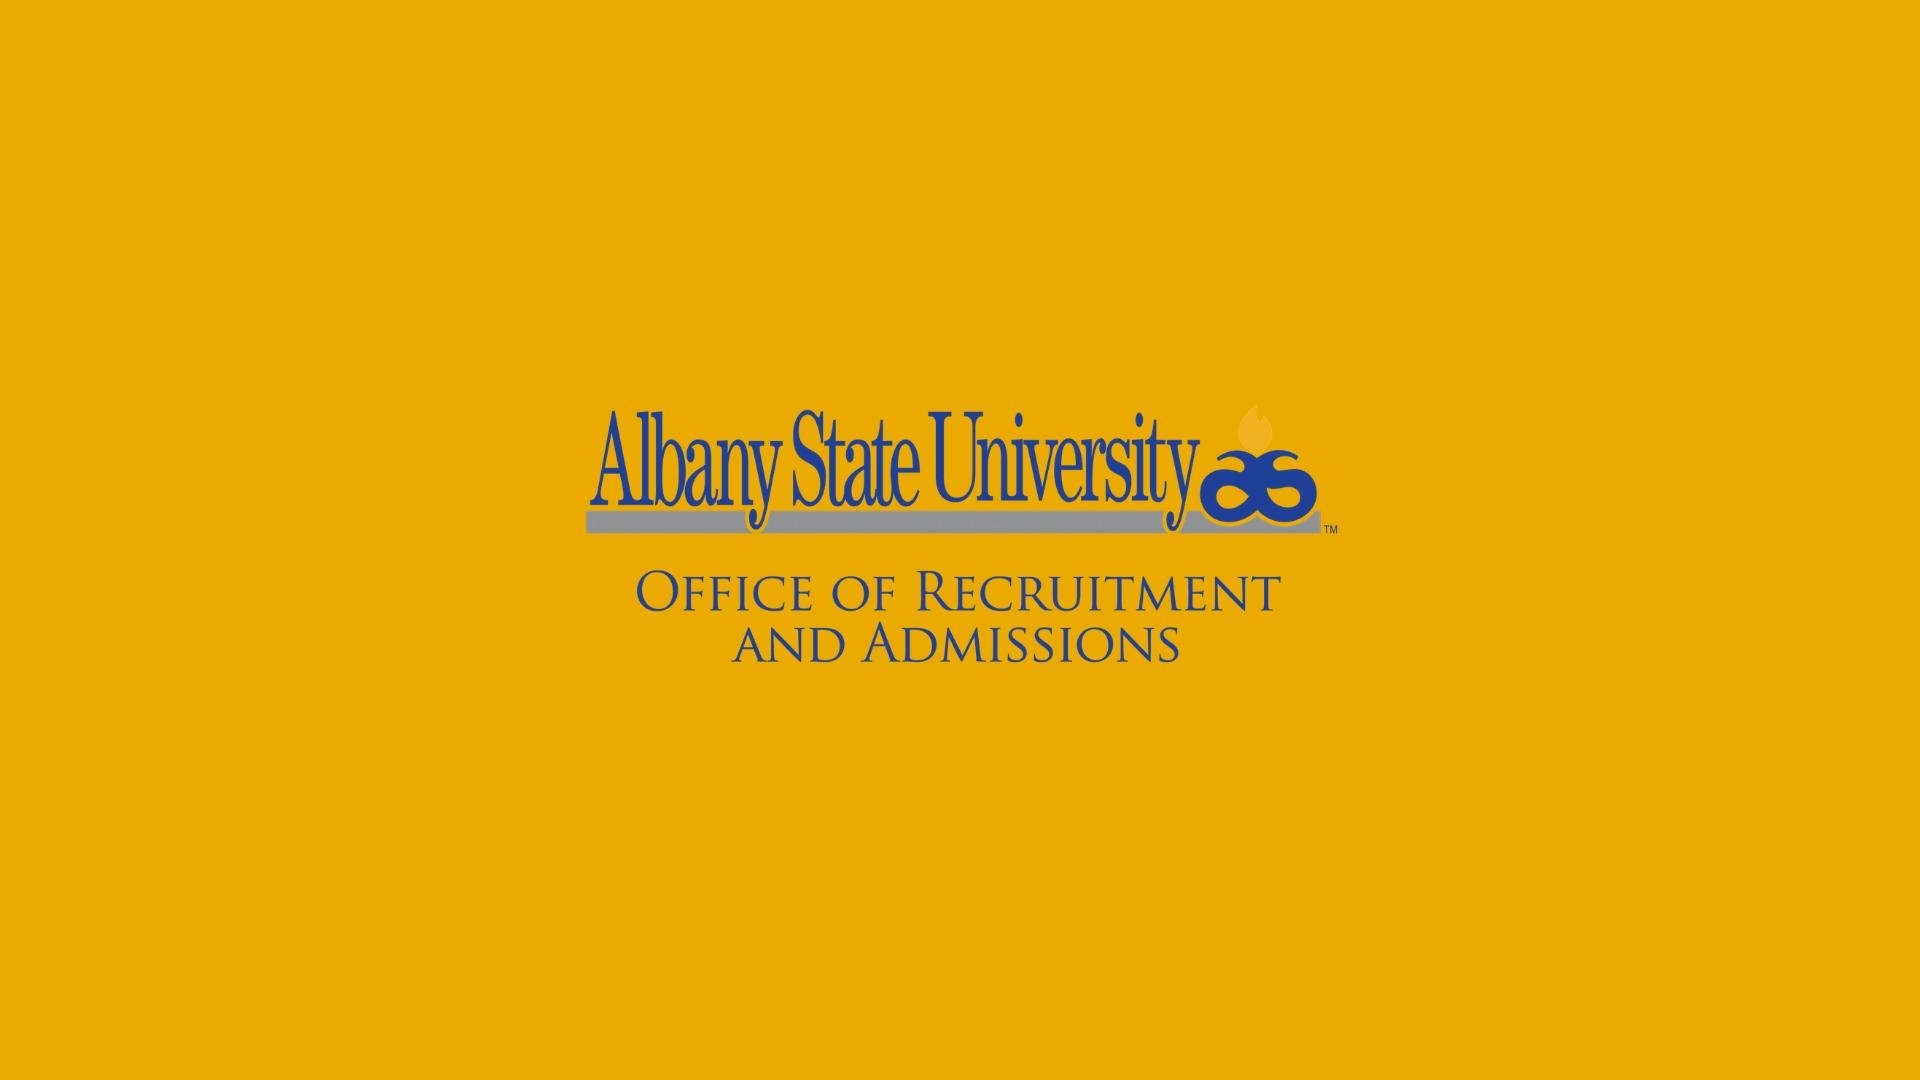 Albany State University: Recruitment & Admissions